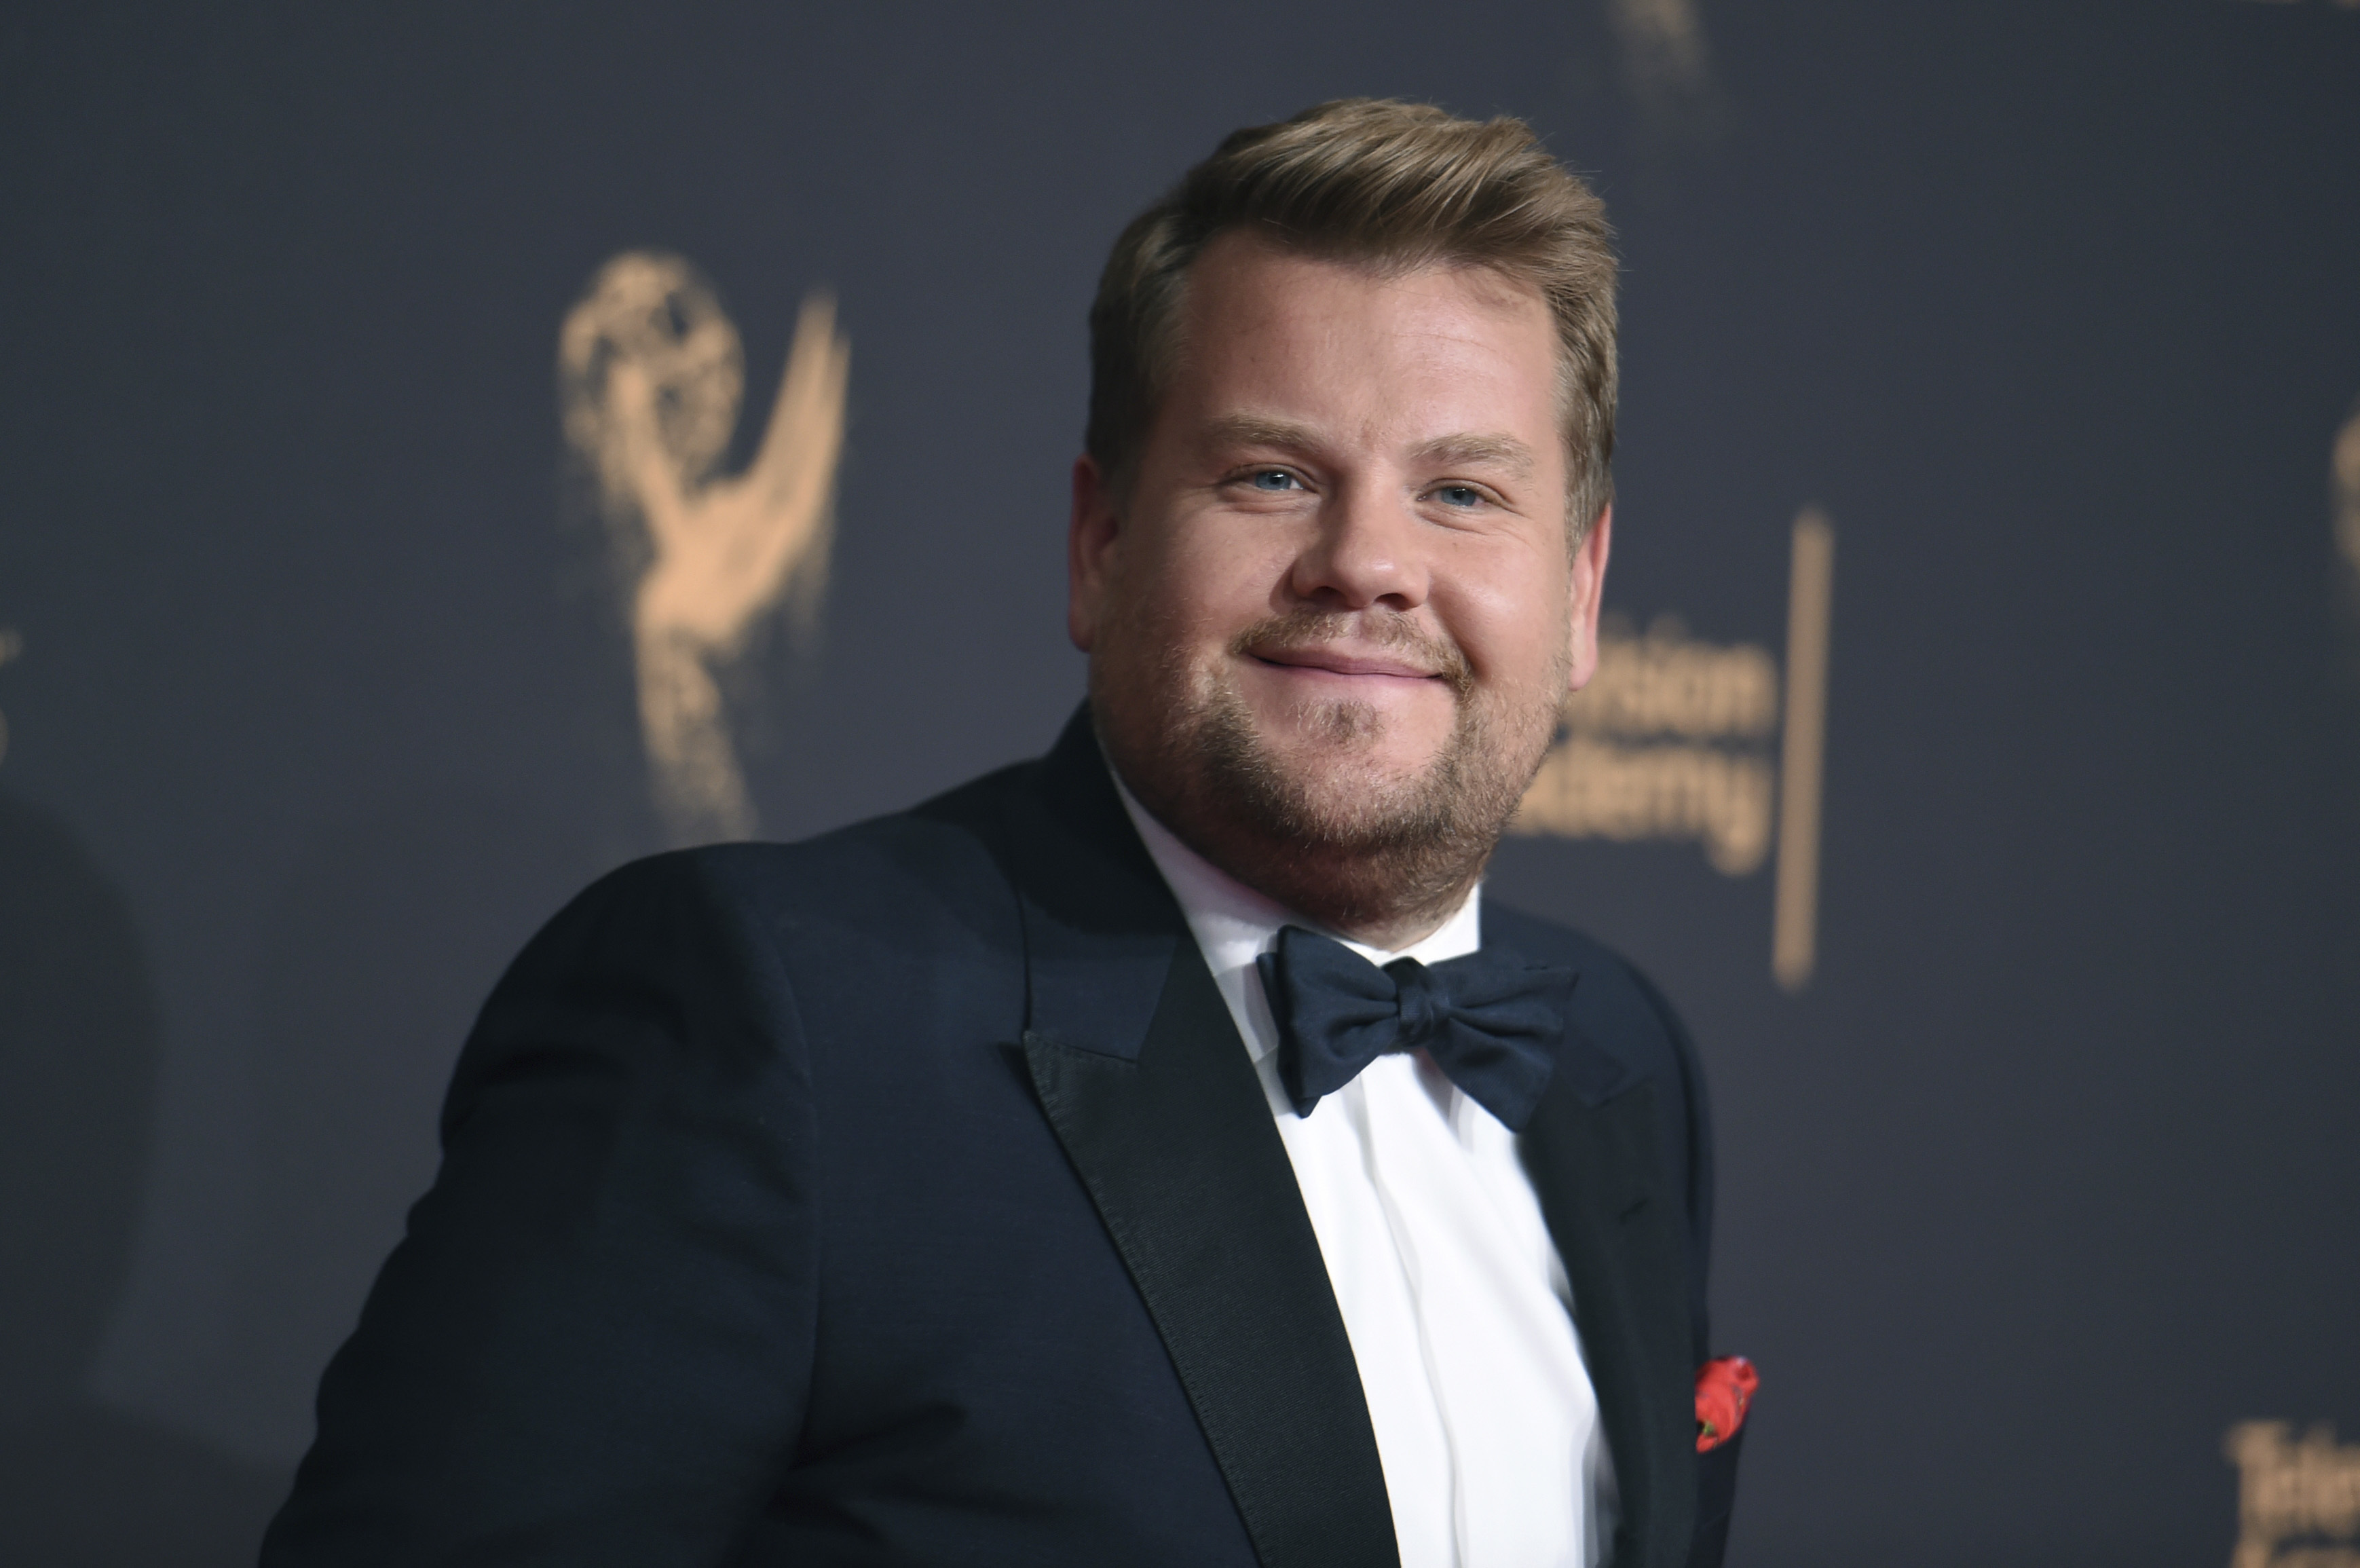 James Corden blasted for smooching Trump's chump